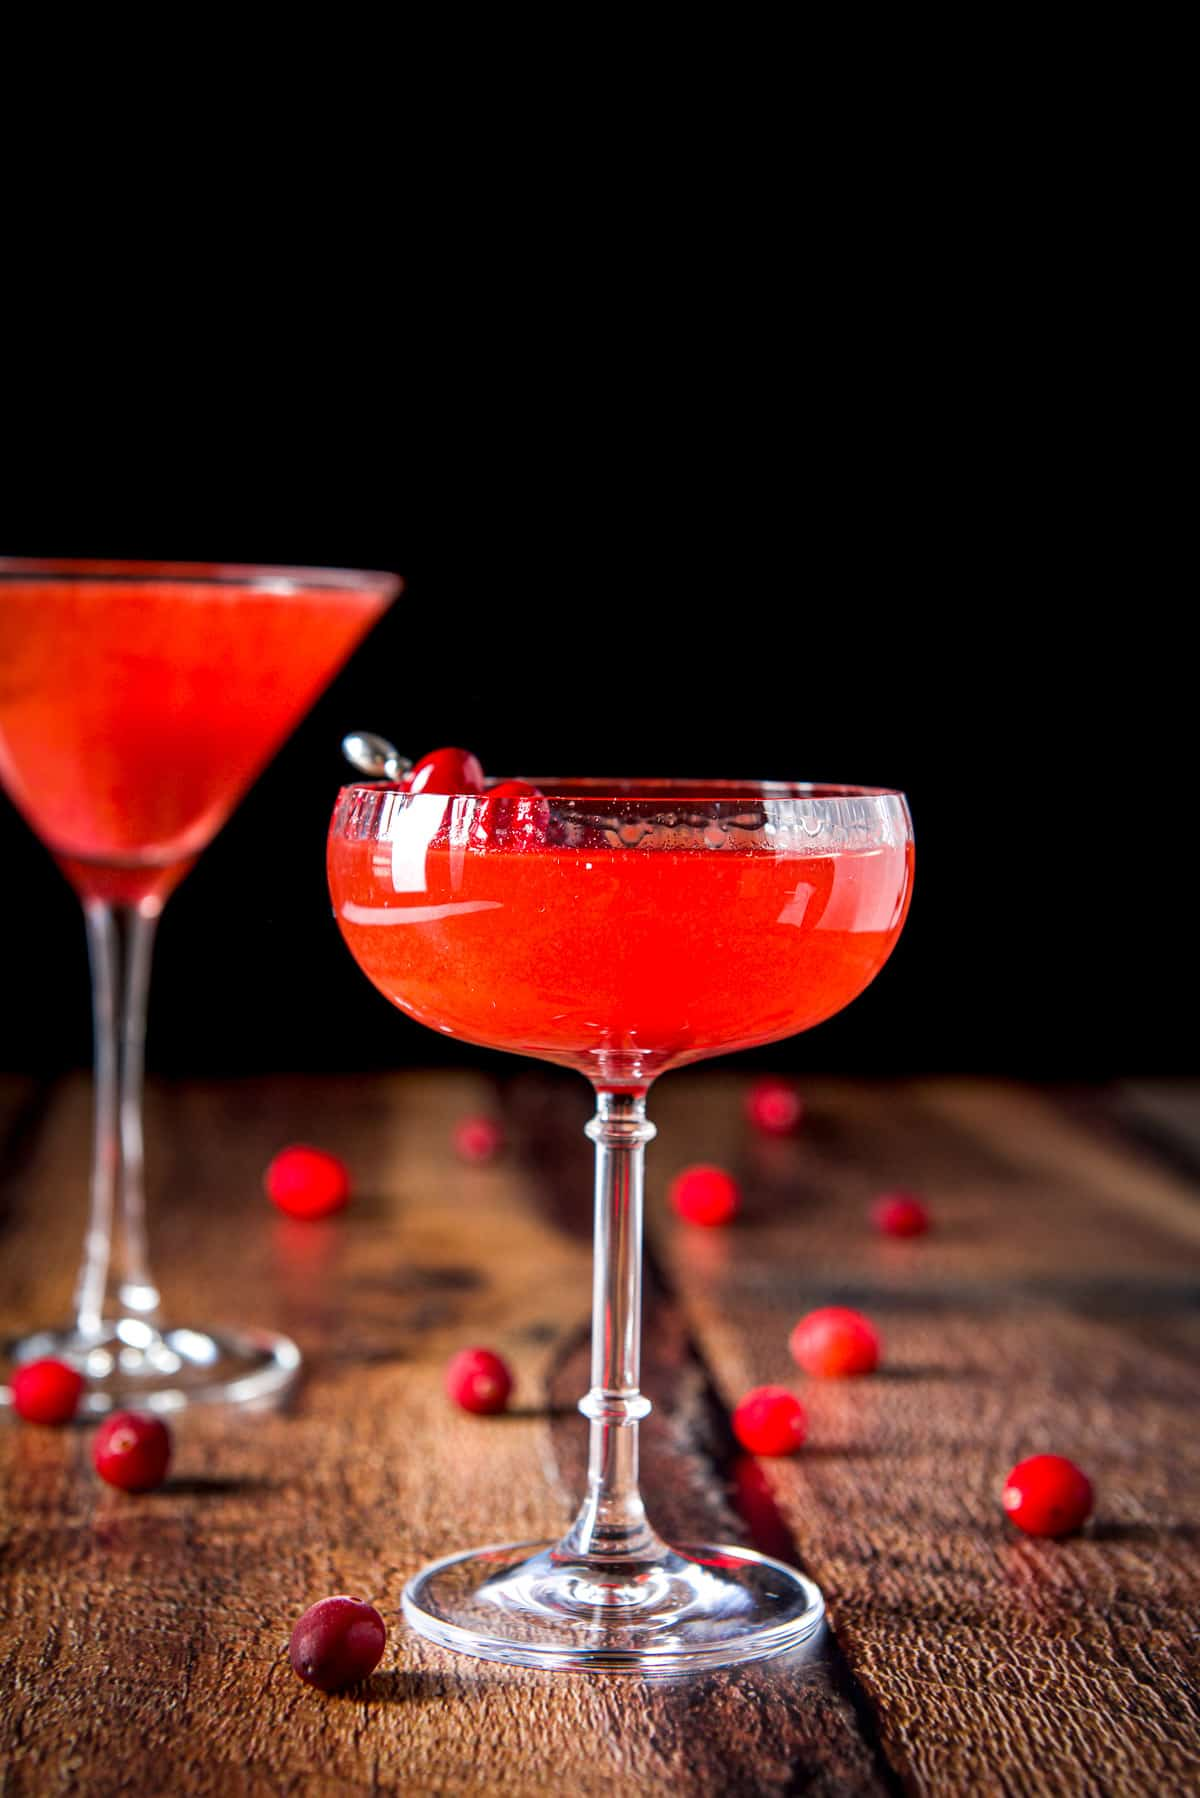 Vertical view of the beveled coup with the cranberry drink with cranberries strewn on the table and another martini glass in the background